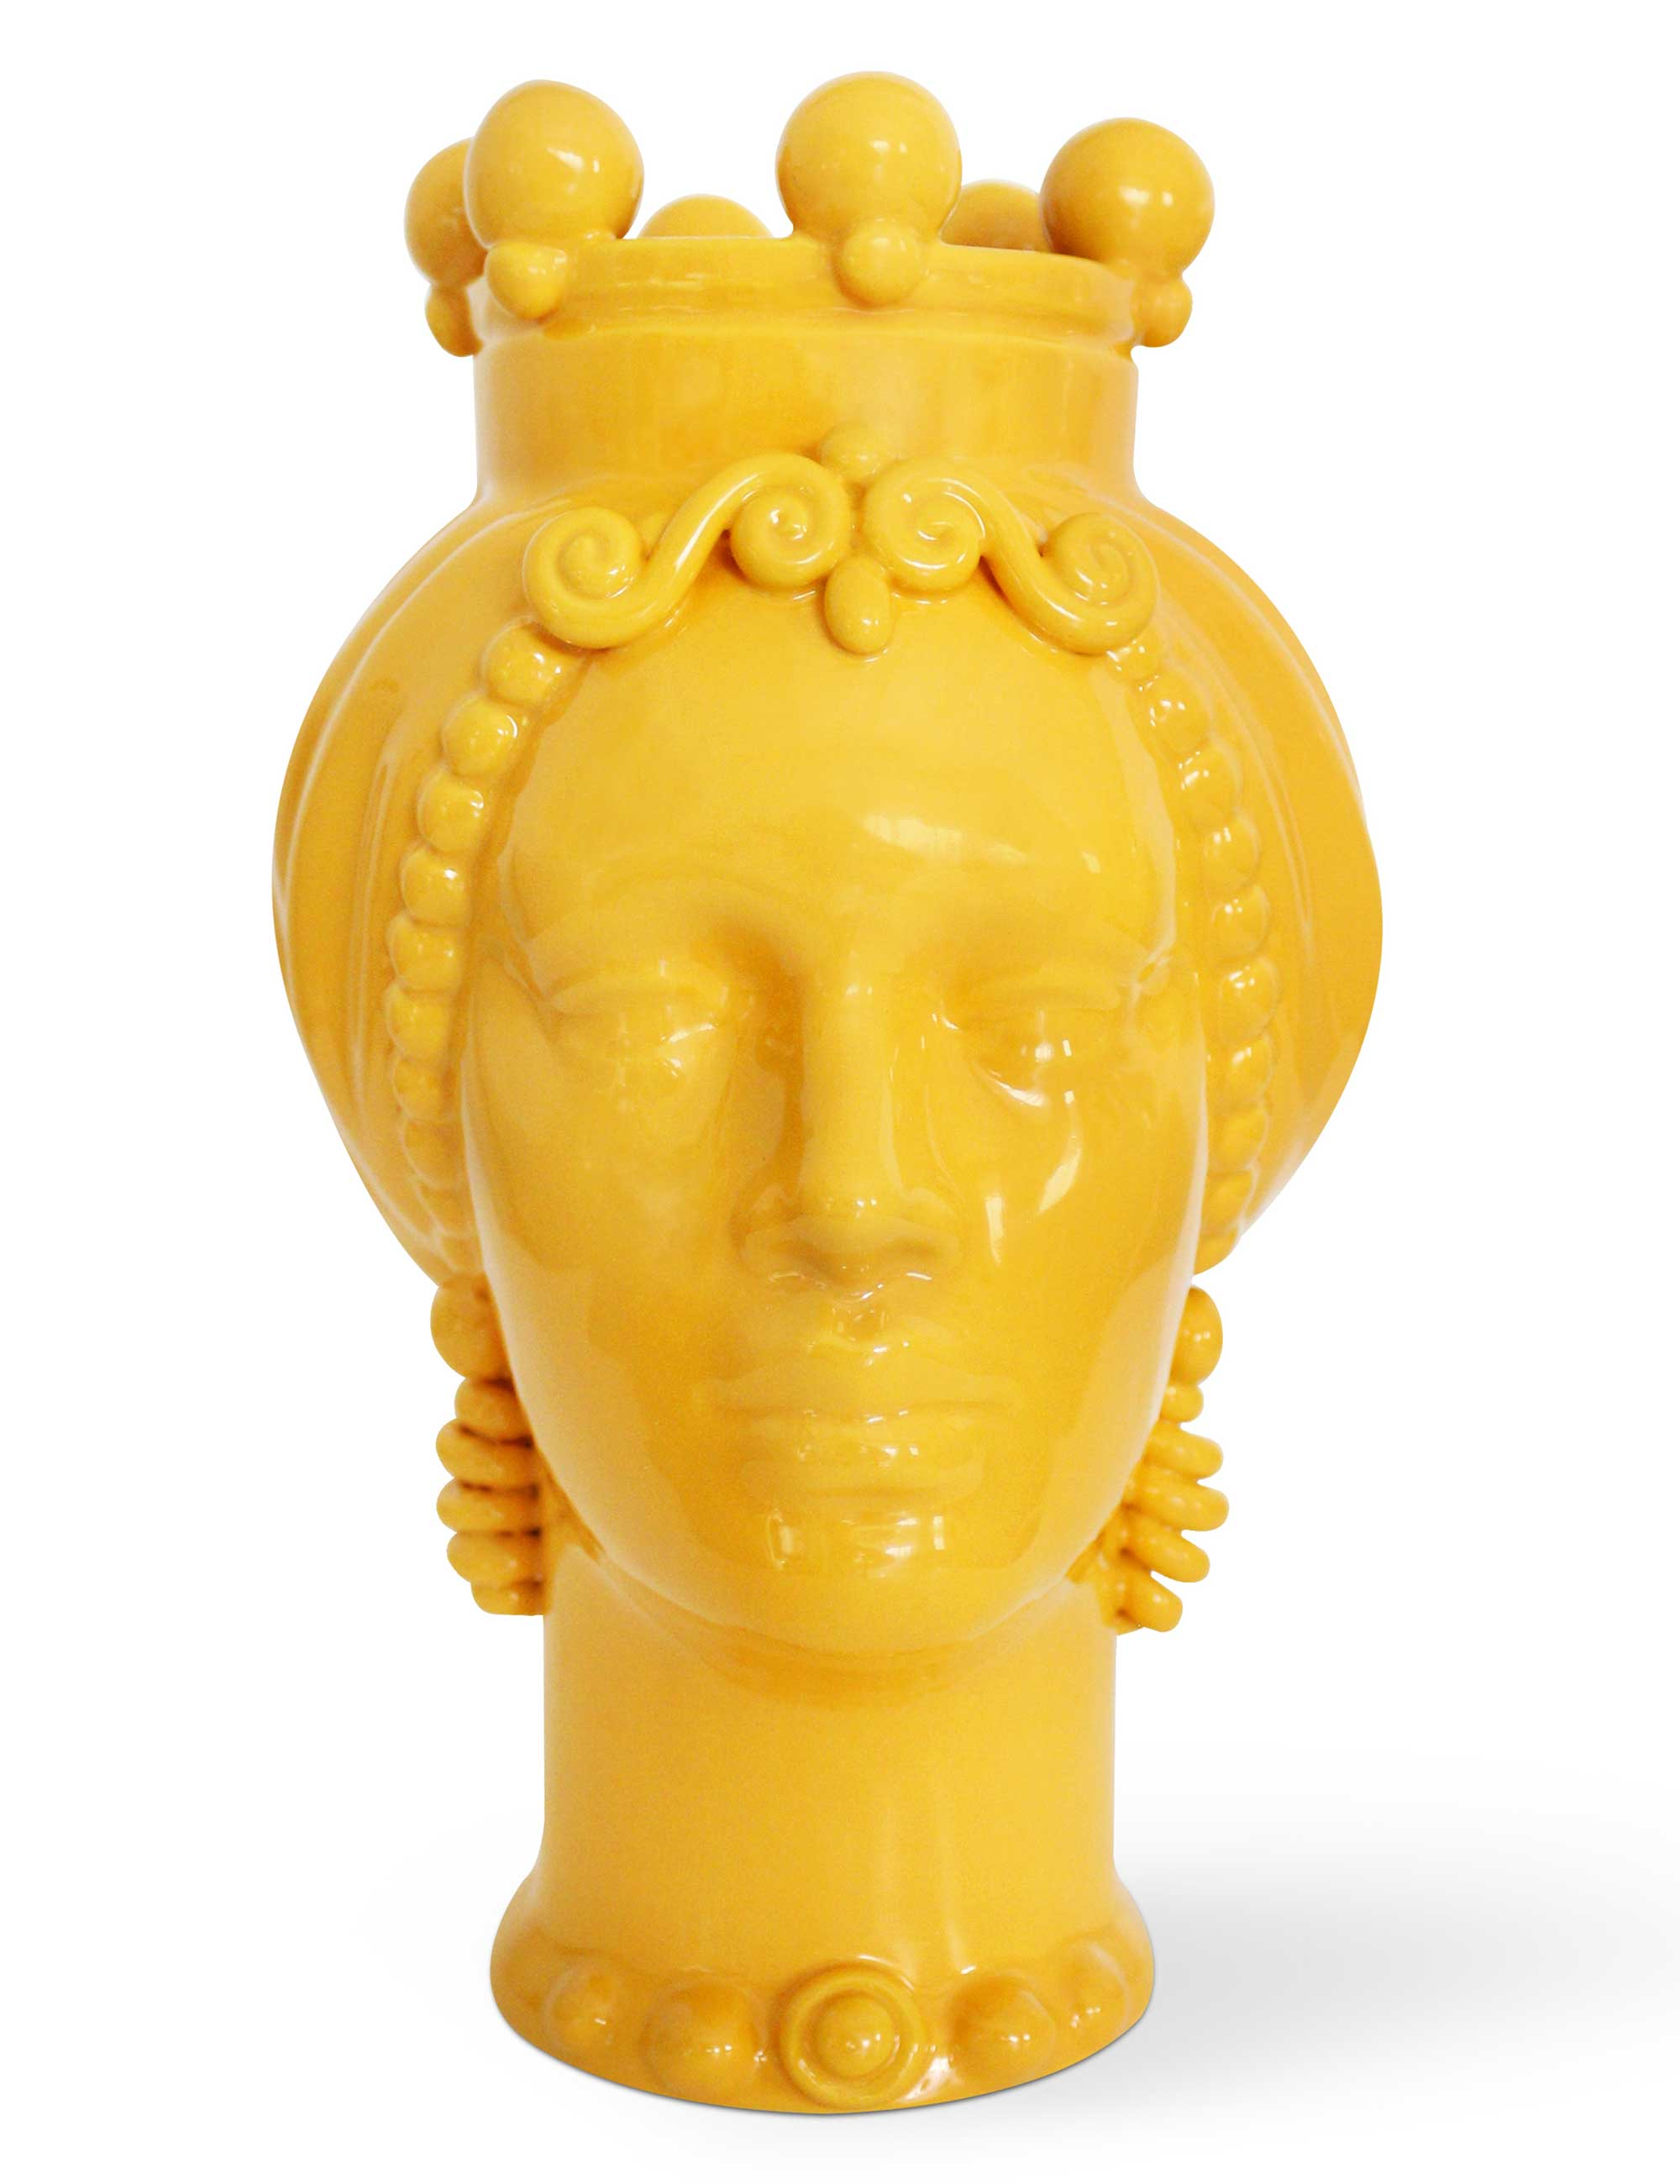 testa di moro donna ceramica siciliana media colore giallo